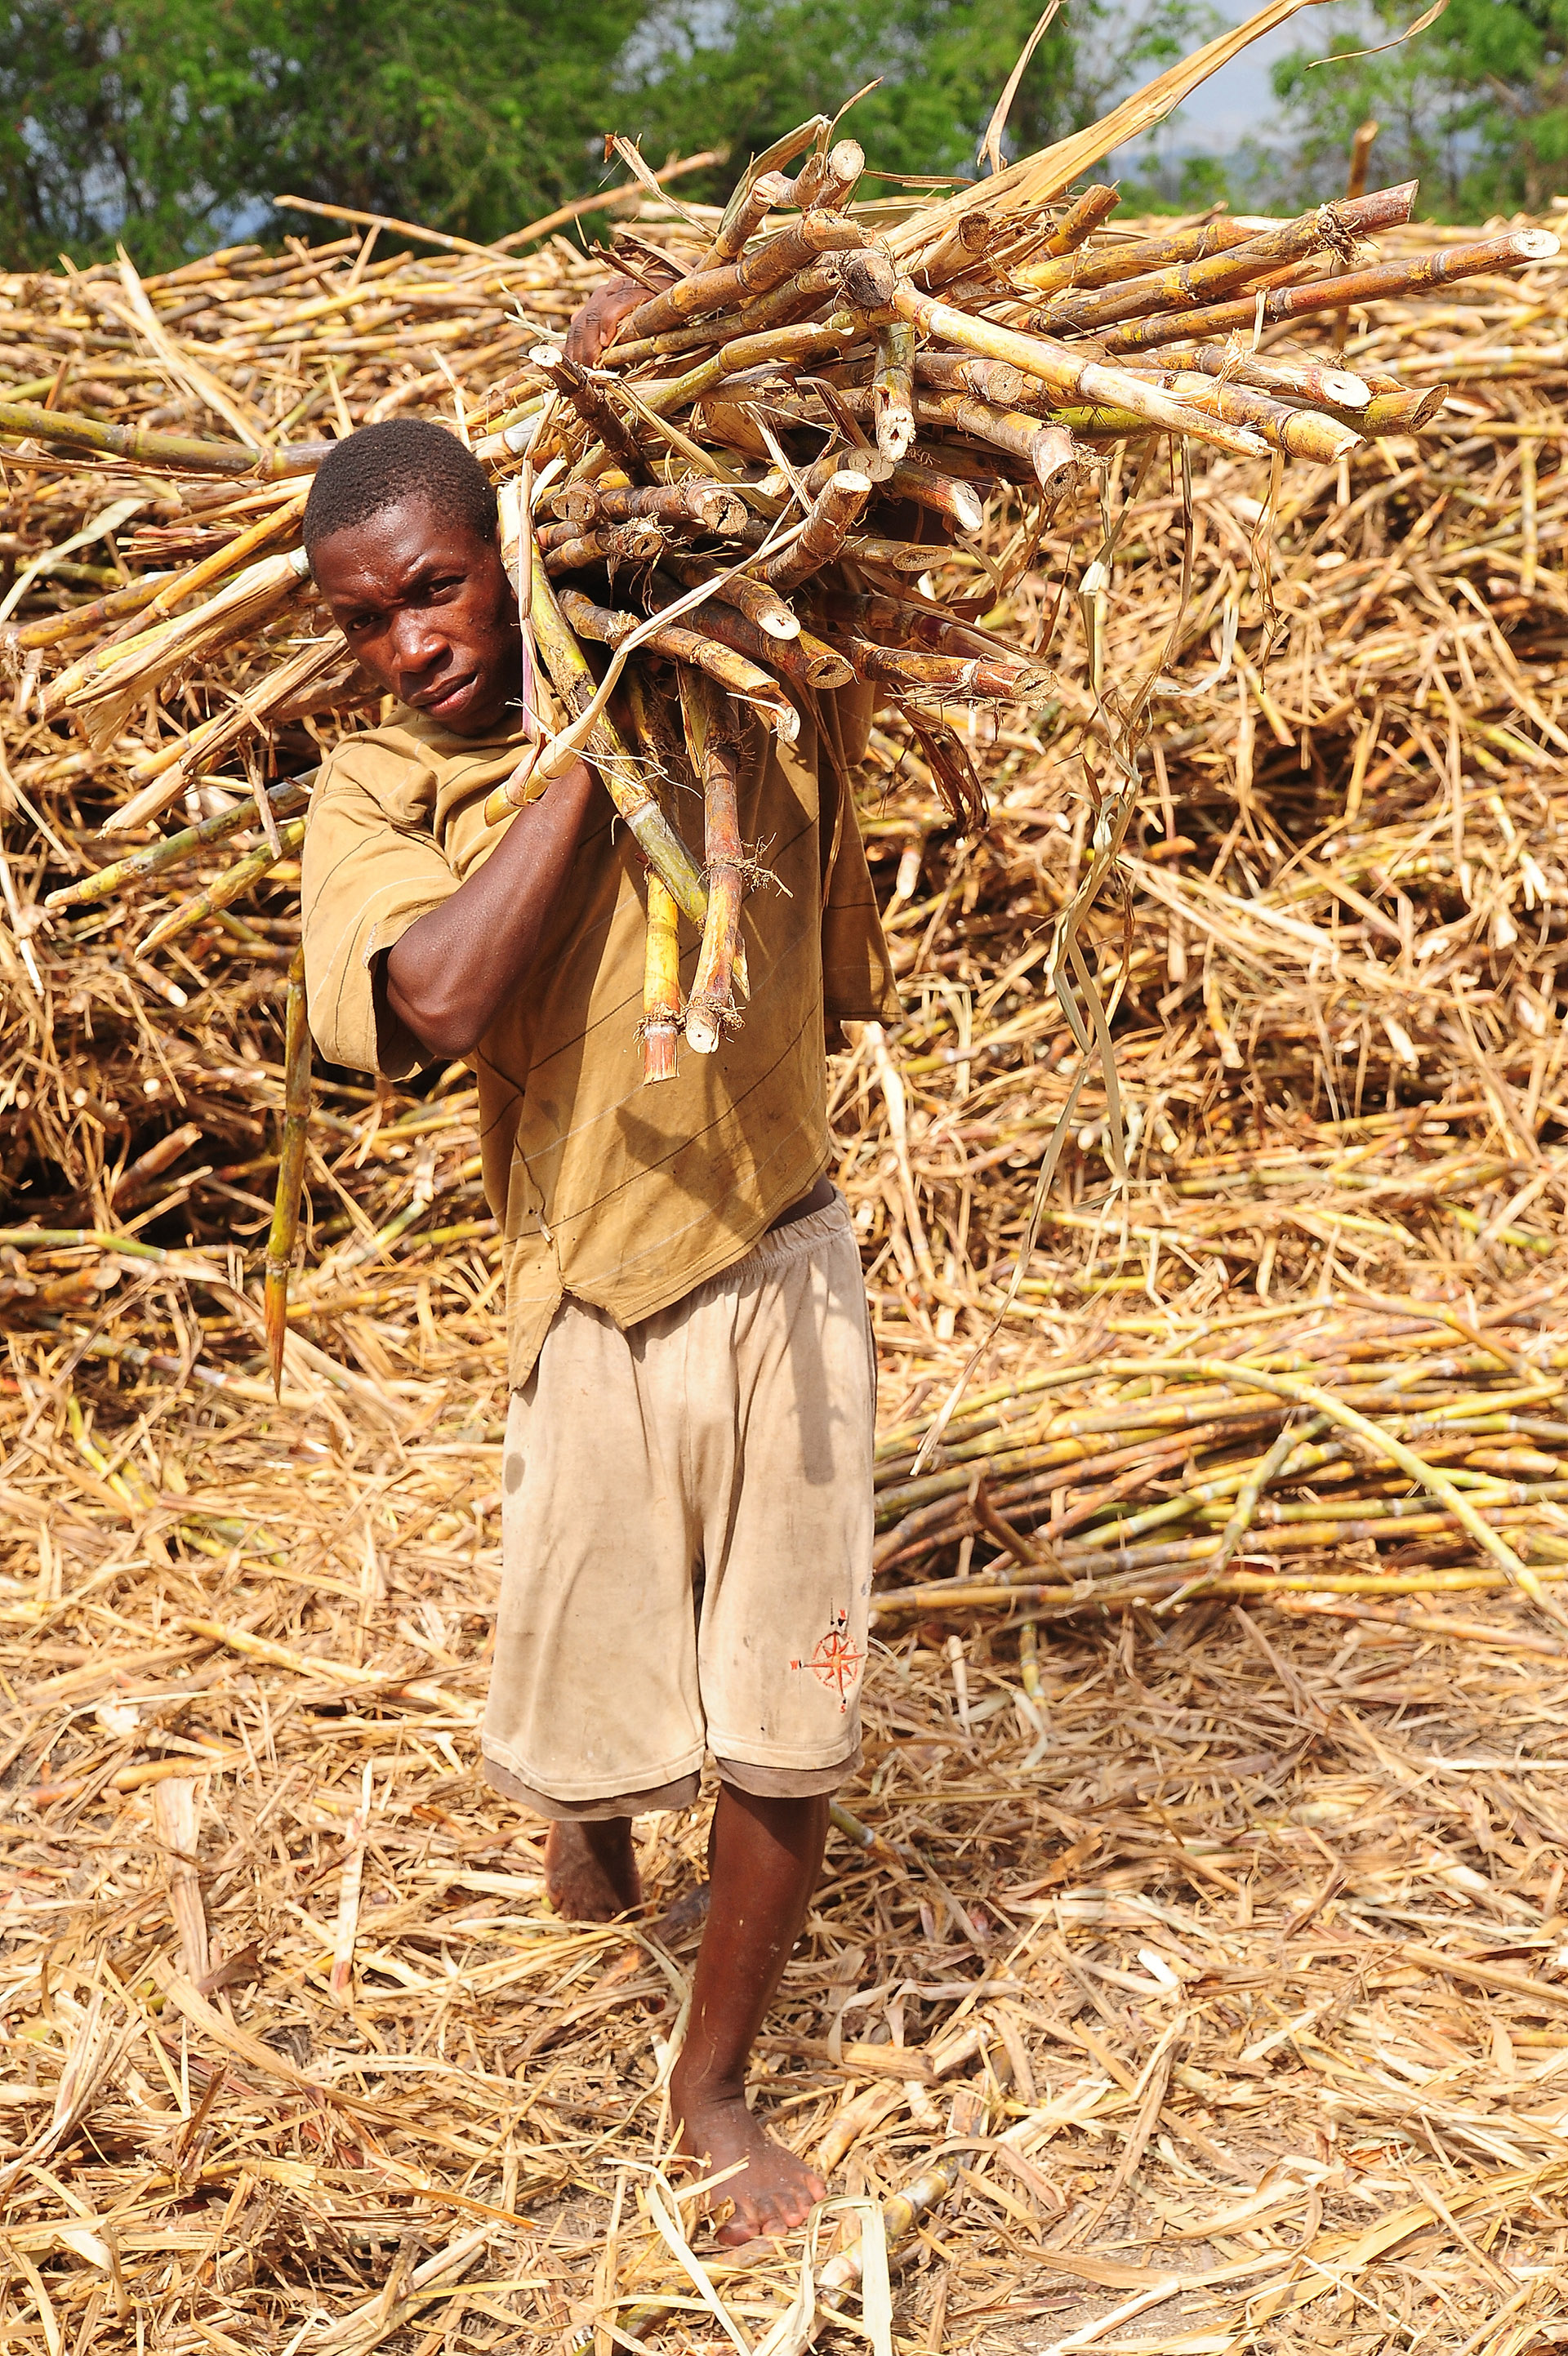 Man carrying hand-harvested sugarcane